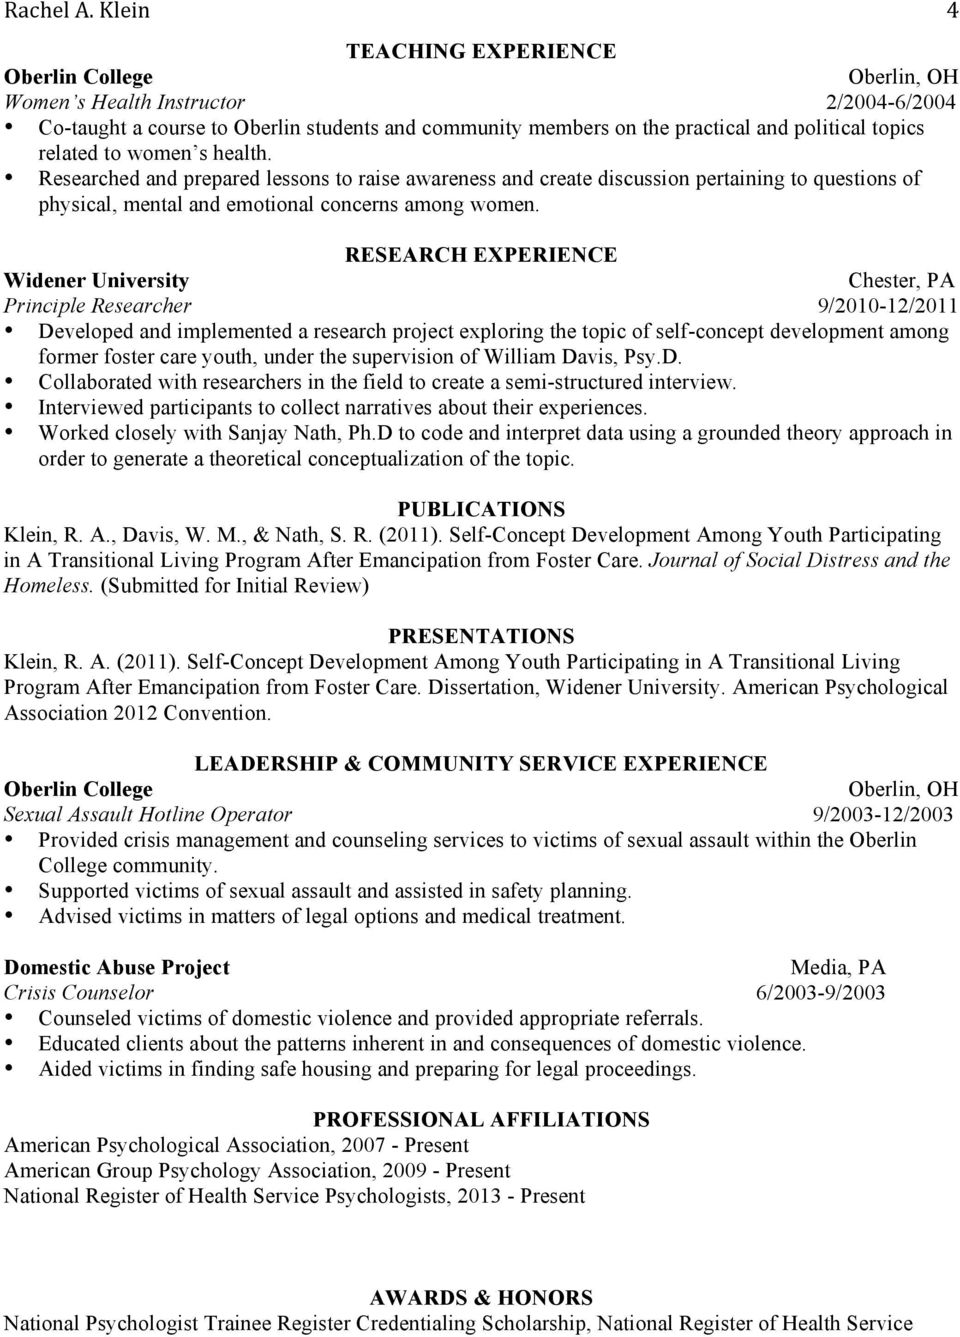 RESEARCH EXPERIENCE Widener University Principle Researcher 9/2010-12/2011 Developed and implemented a research project exploring the topic of self-concept development among former foster care youth,